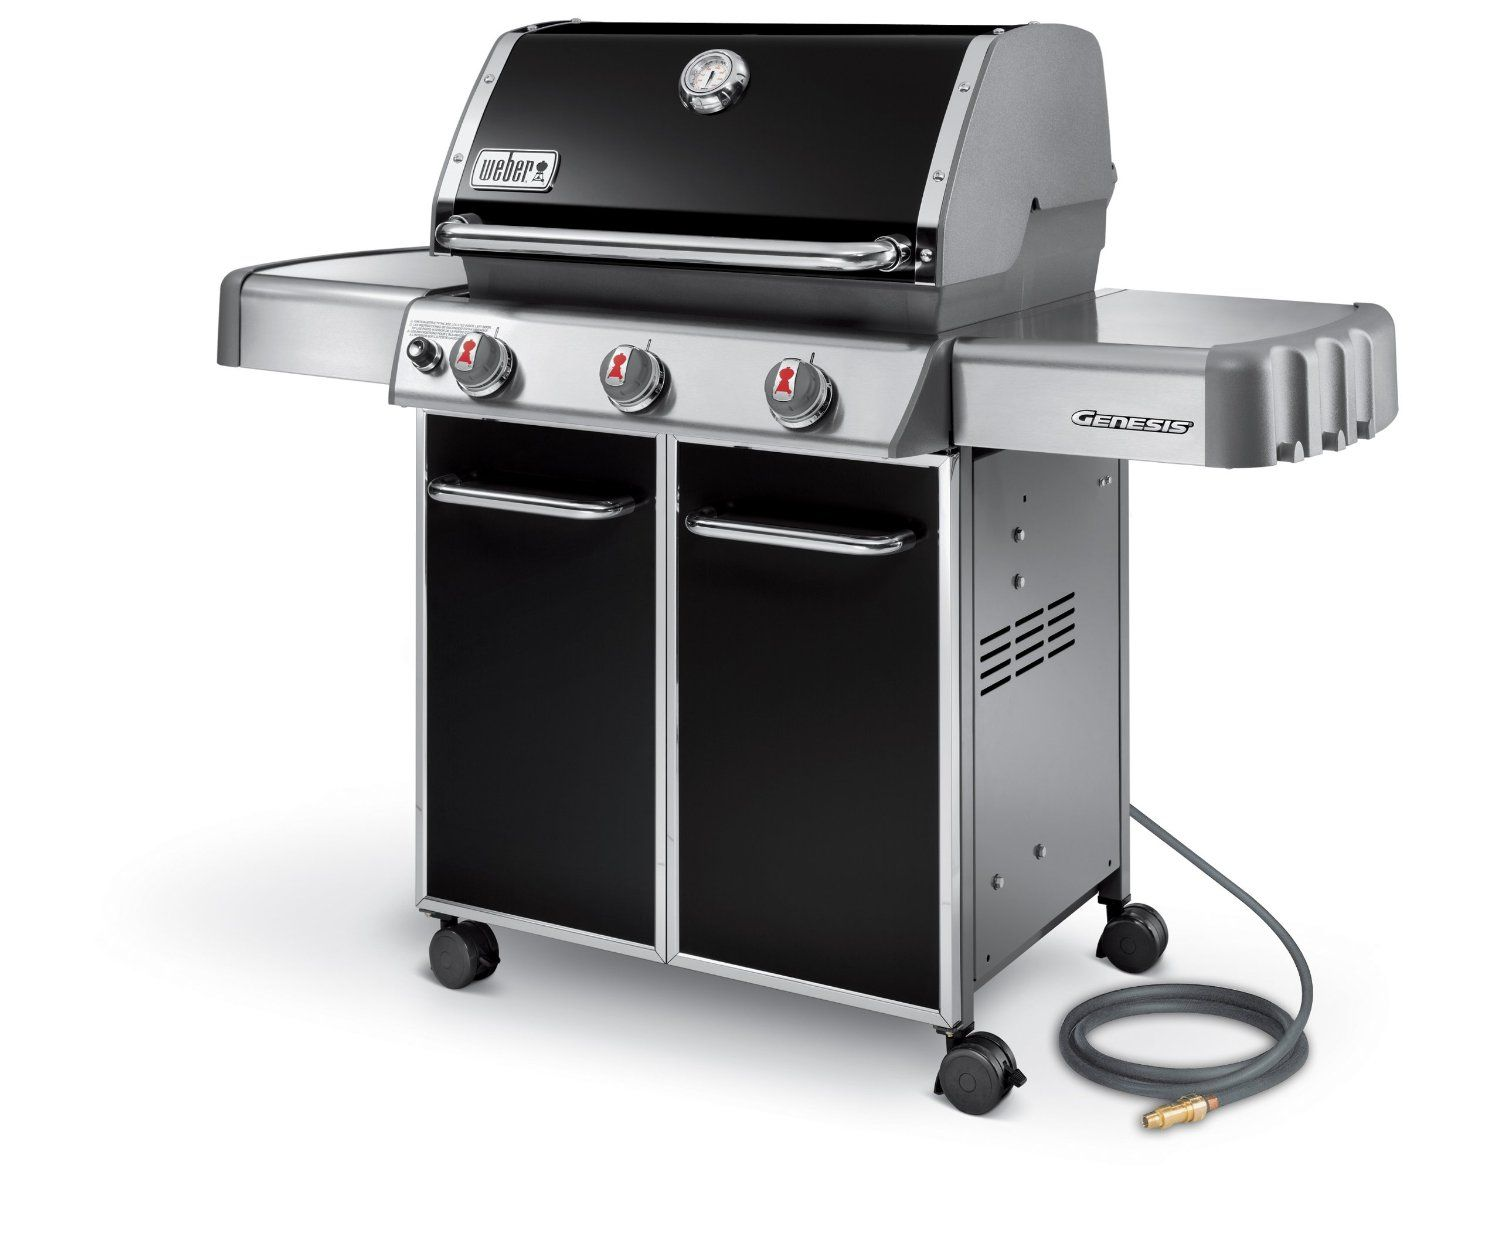 Amazon Com Weber Genesis 6611001 E 310 637 Square Inch 38 000 Btu Natural Gas Grill Black Patio Lawn Garden Gas Grill Reviews Gas Grill Best Gas Grills